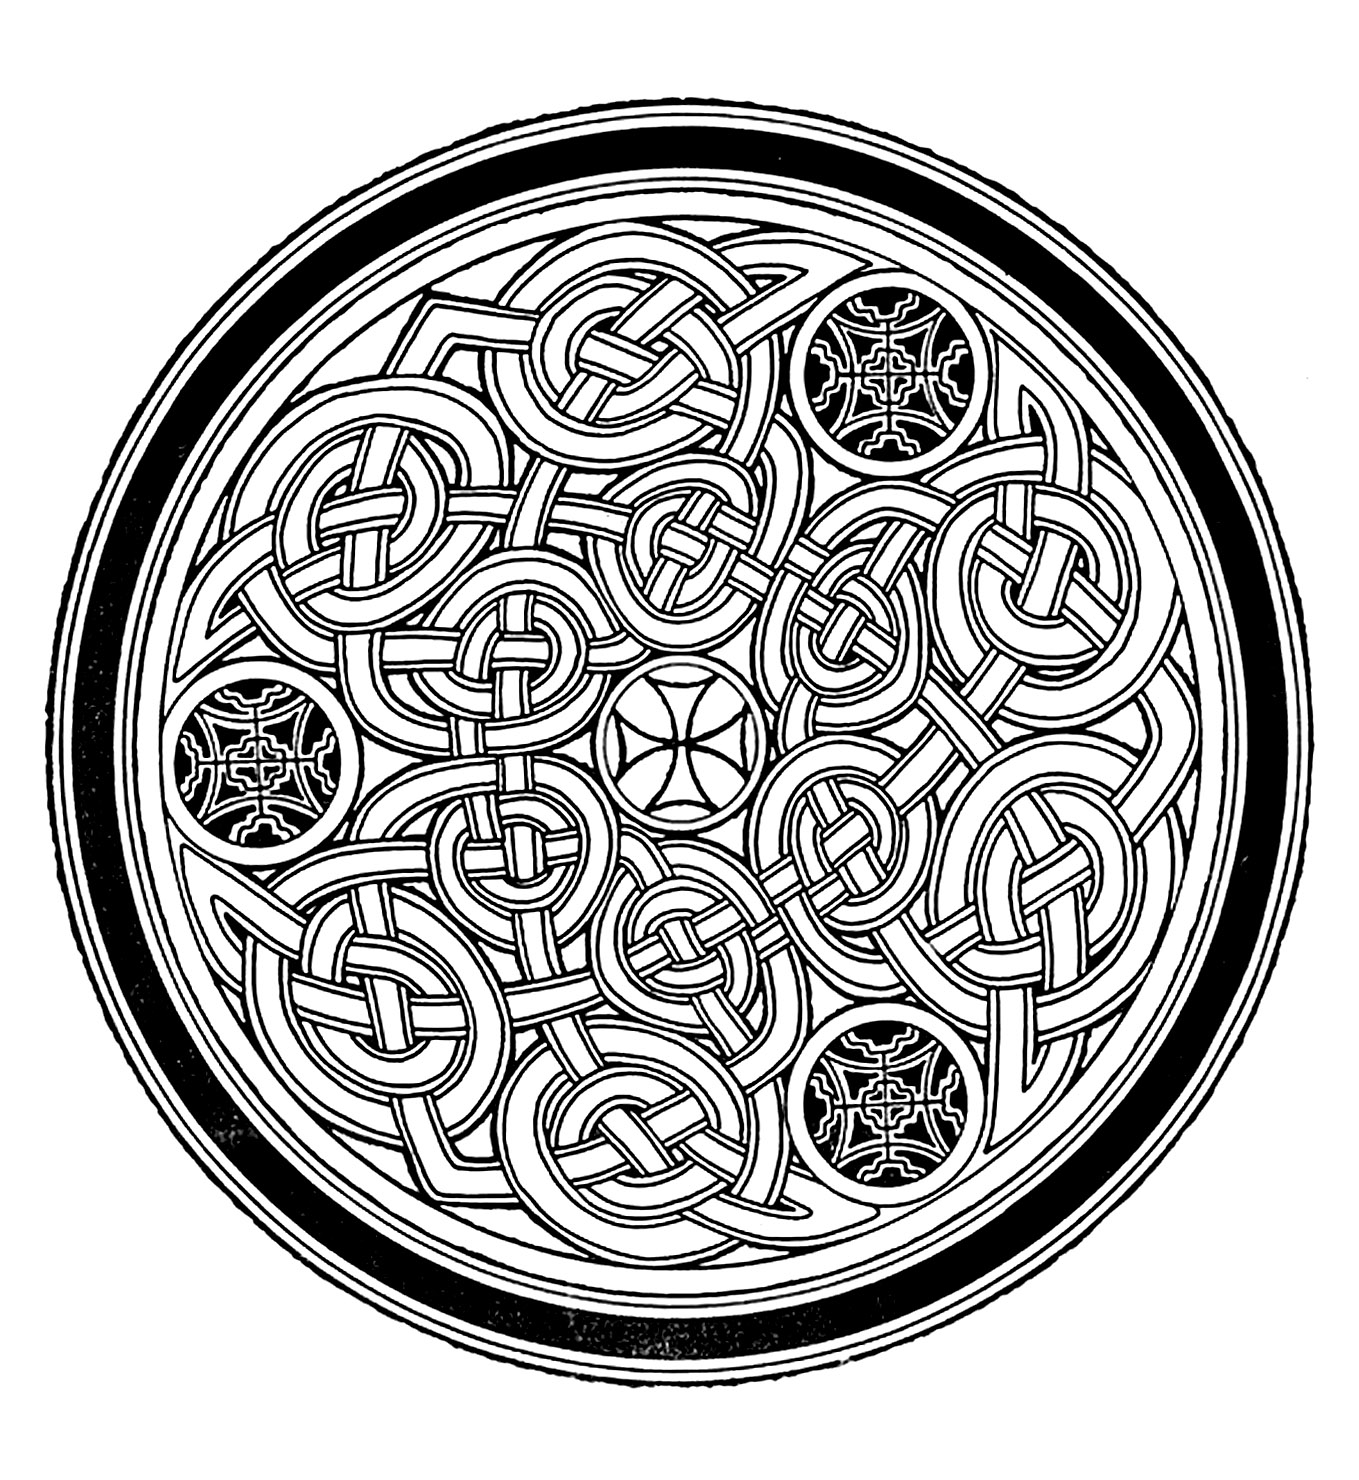 hard mandala coloring pages printable mandala flower coloring pages difficult at getcolorings hard pages printable coloring mandala